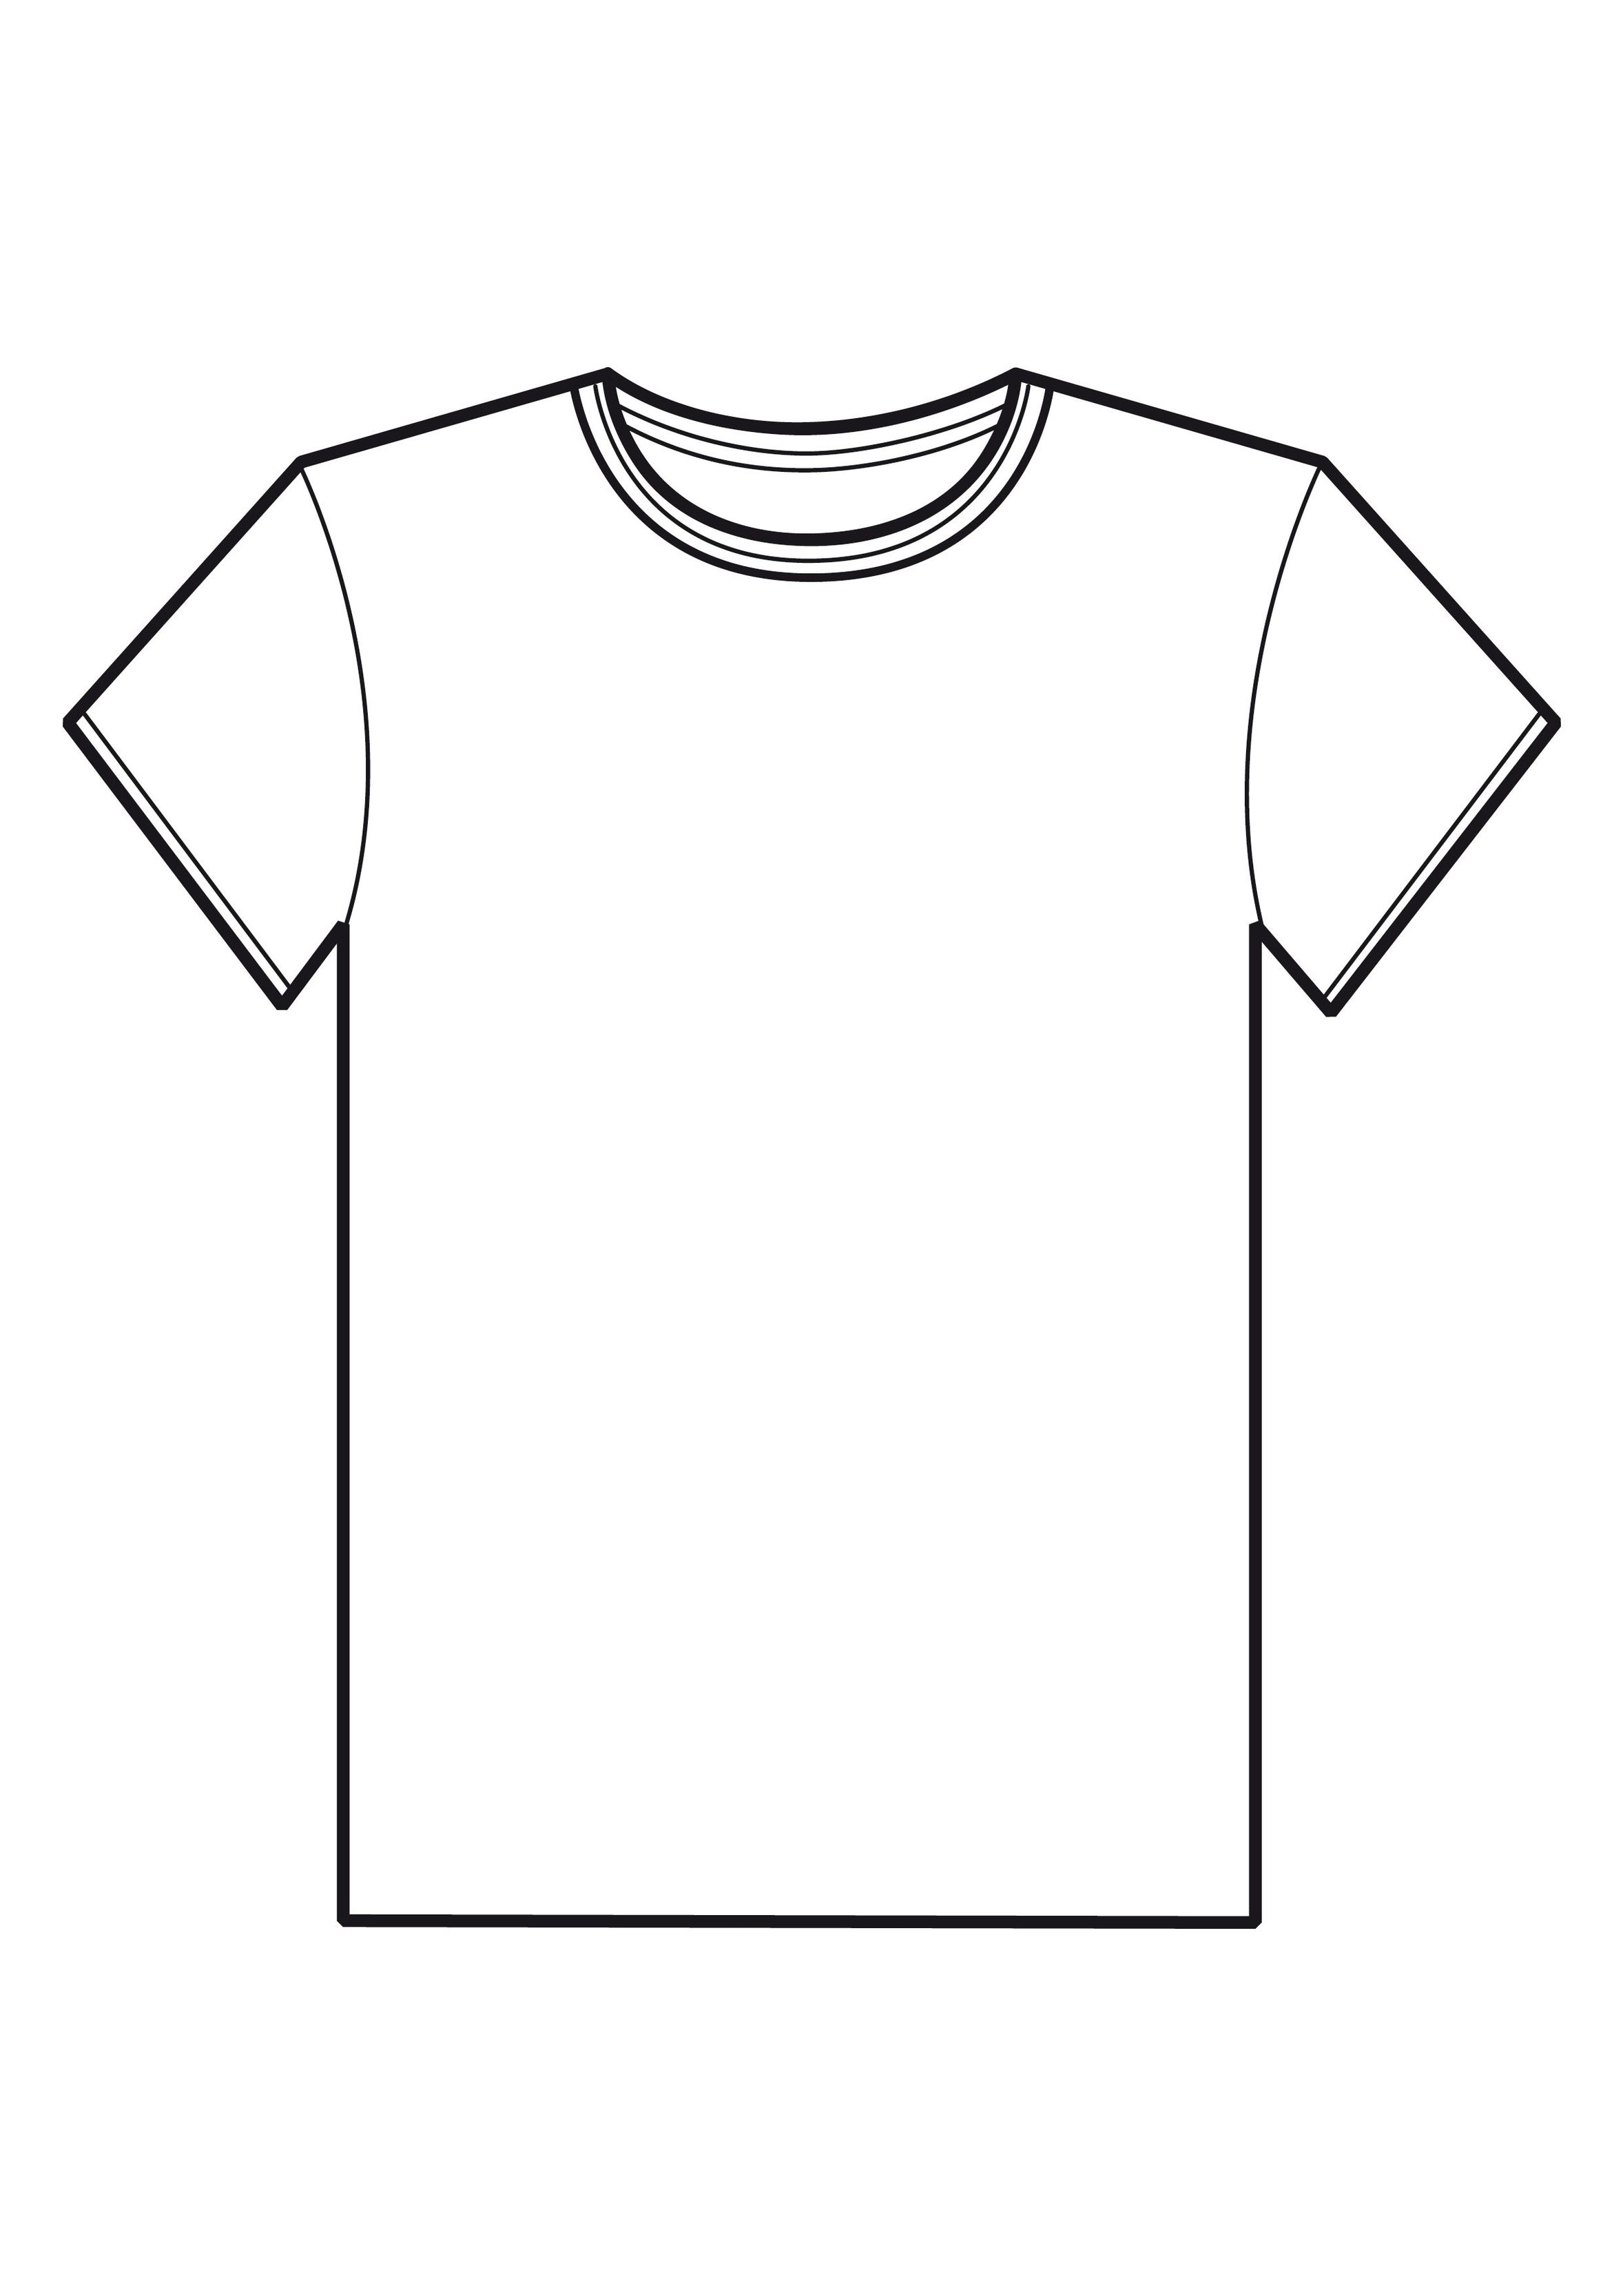 White teeshirt clipart image library T shirt shirt clip art images free clipart - ClipartBarn image library